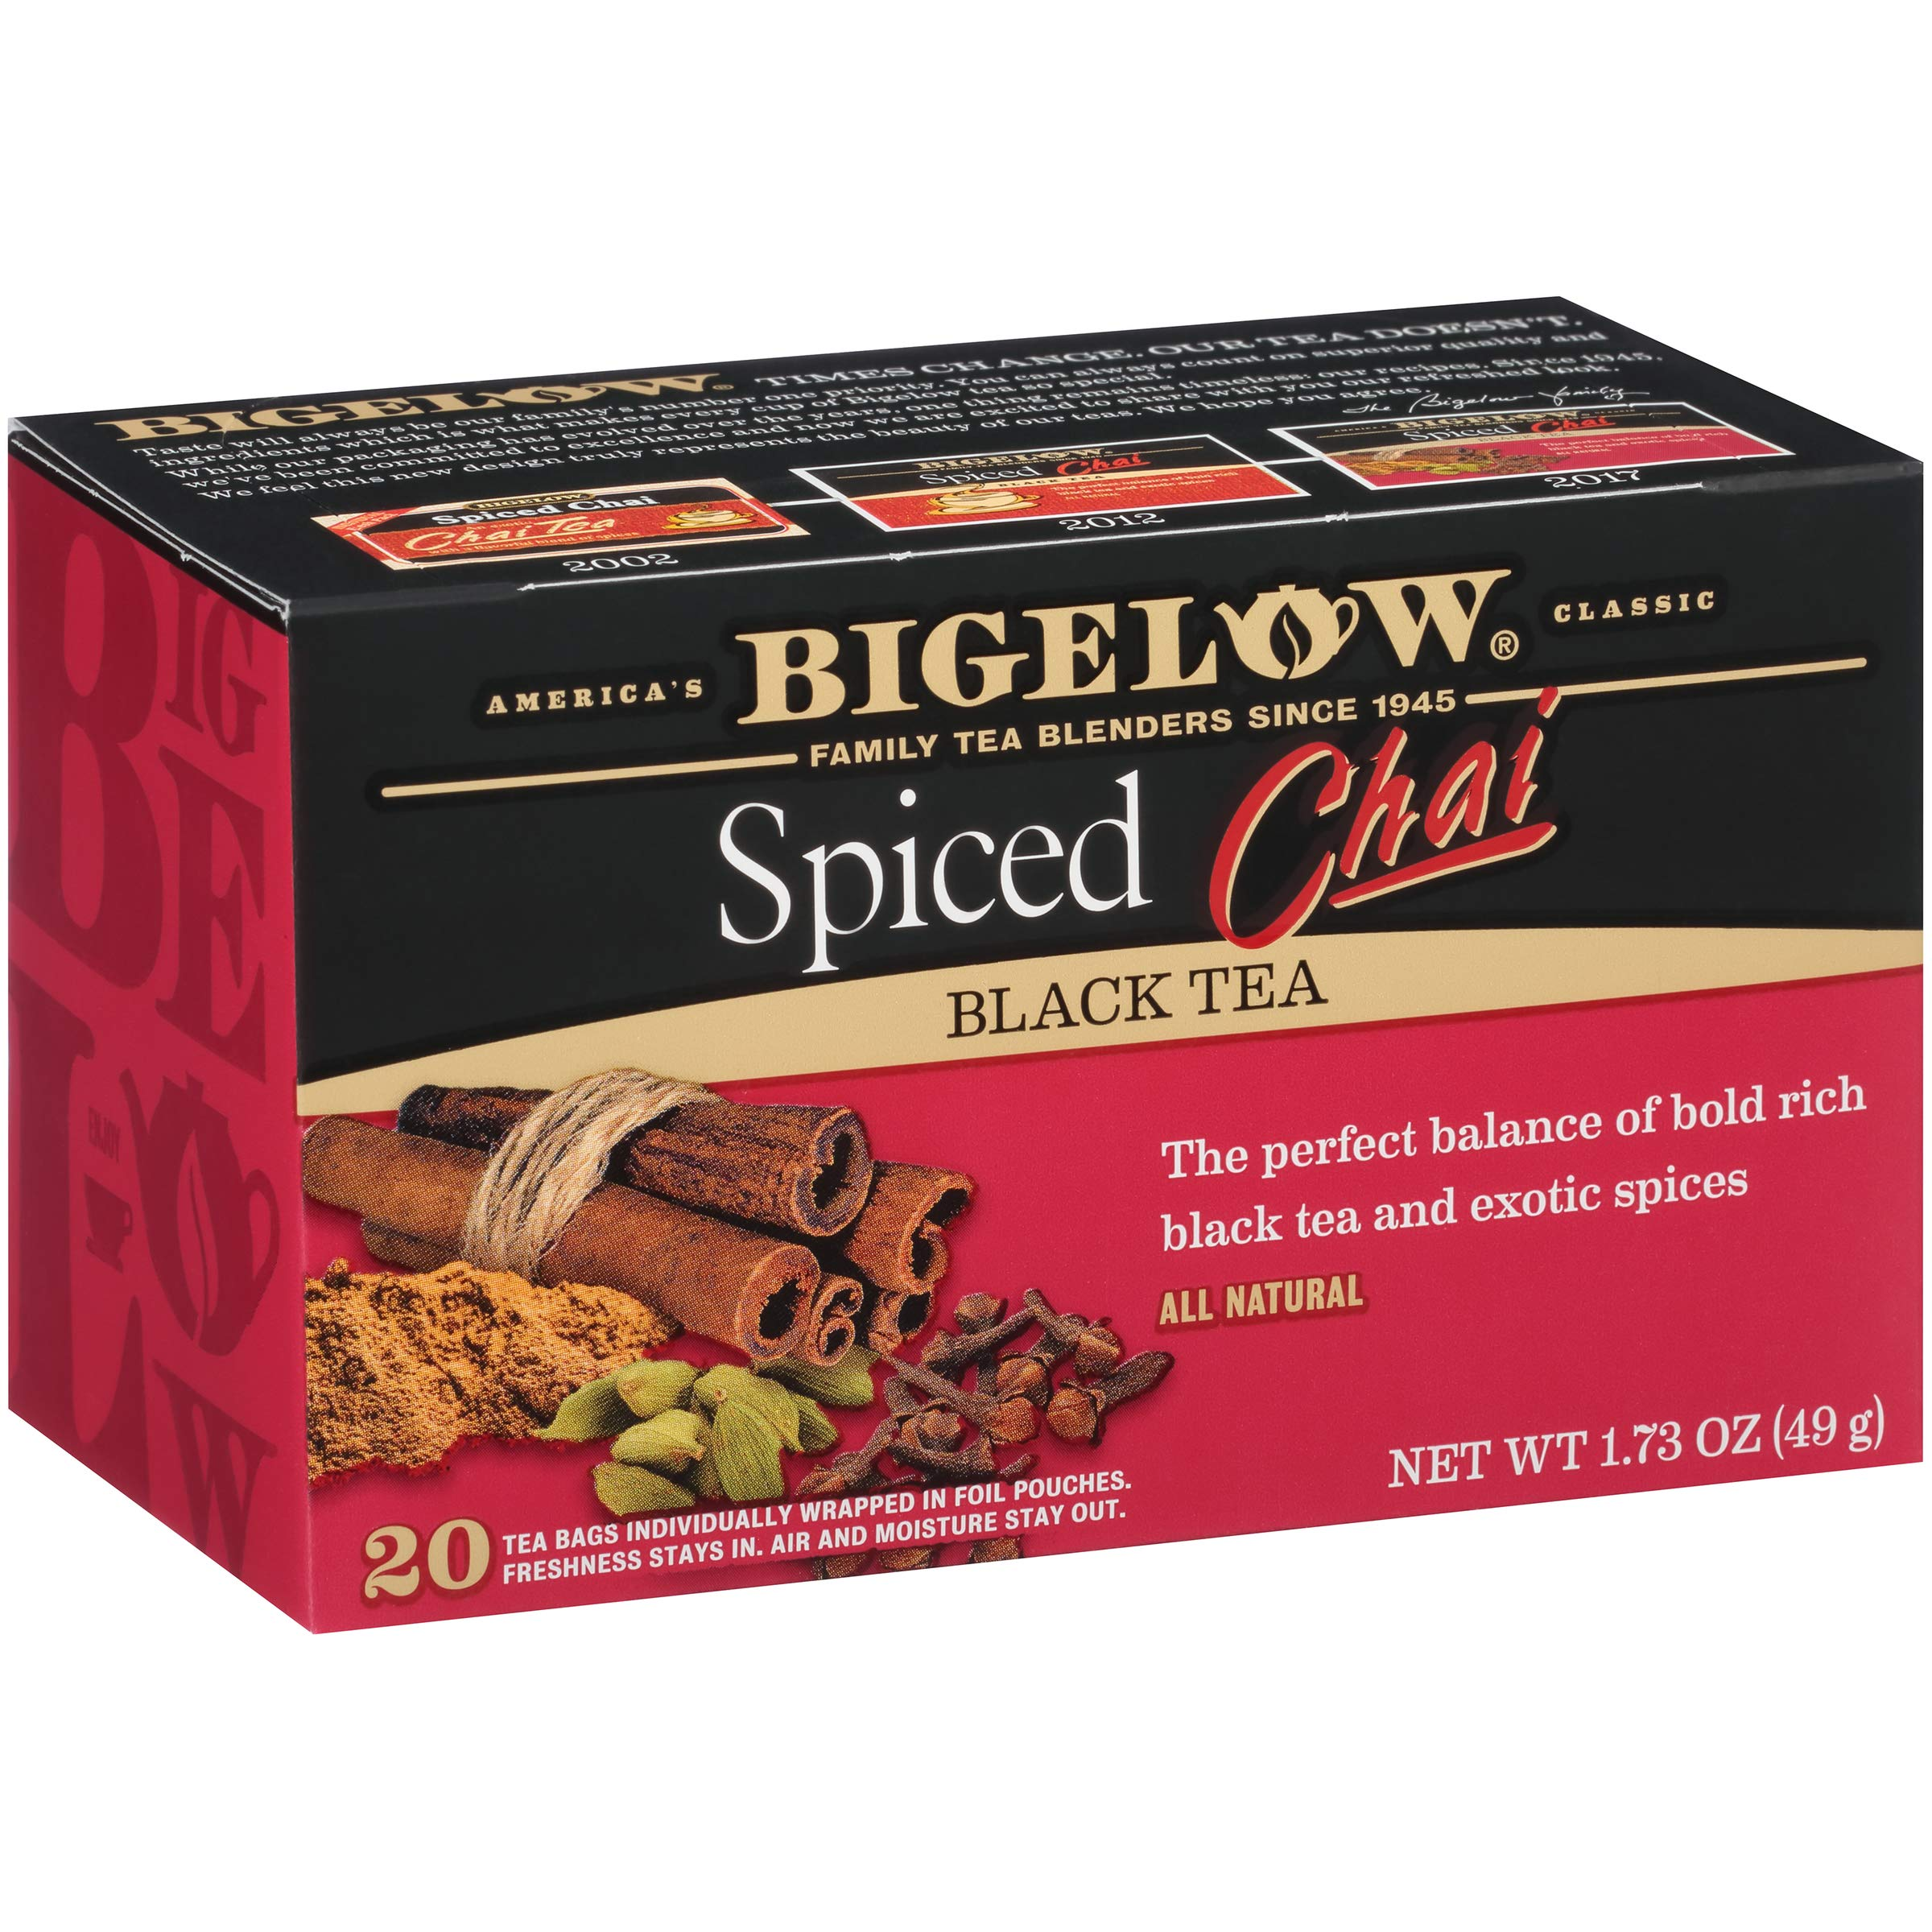 Bigelow Spiced Chai Tea 20 Bags (Pack of 6), 120 Tea Bags Total.  Caffeinated Individual Black Tea Bags, for Hot Tea or Iced Tea, Drink Plain or Sweetened with Honey or Sugar by Bigelow Tea